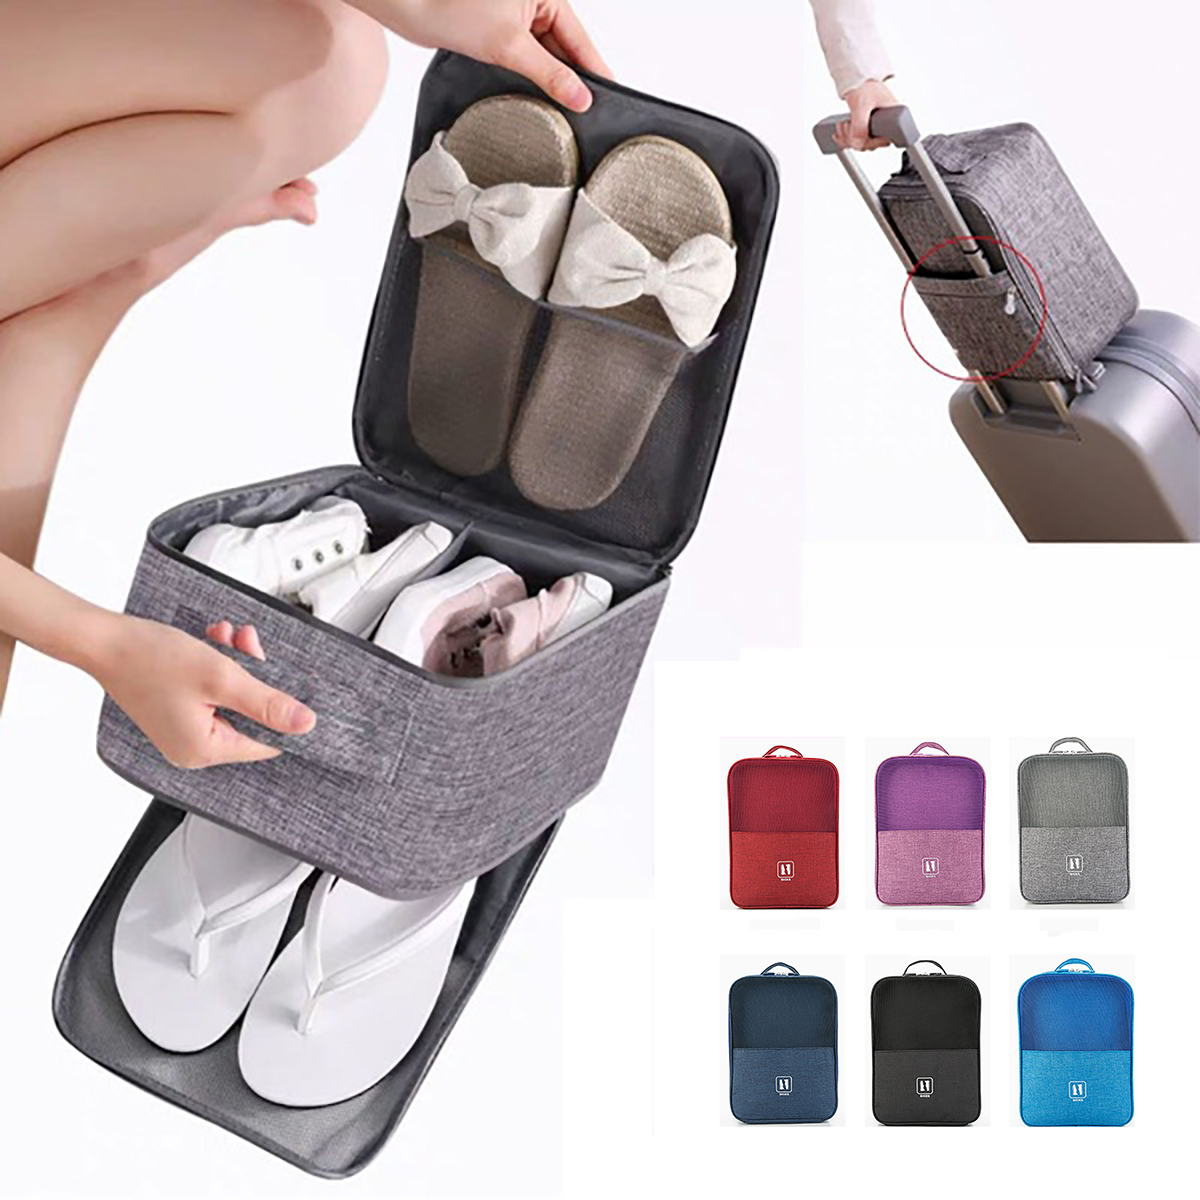 Waterproof Portable Trolley Travel Shoe Bag Pouch Luggage Laundry Organizer